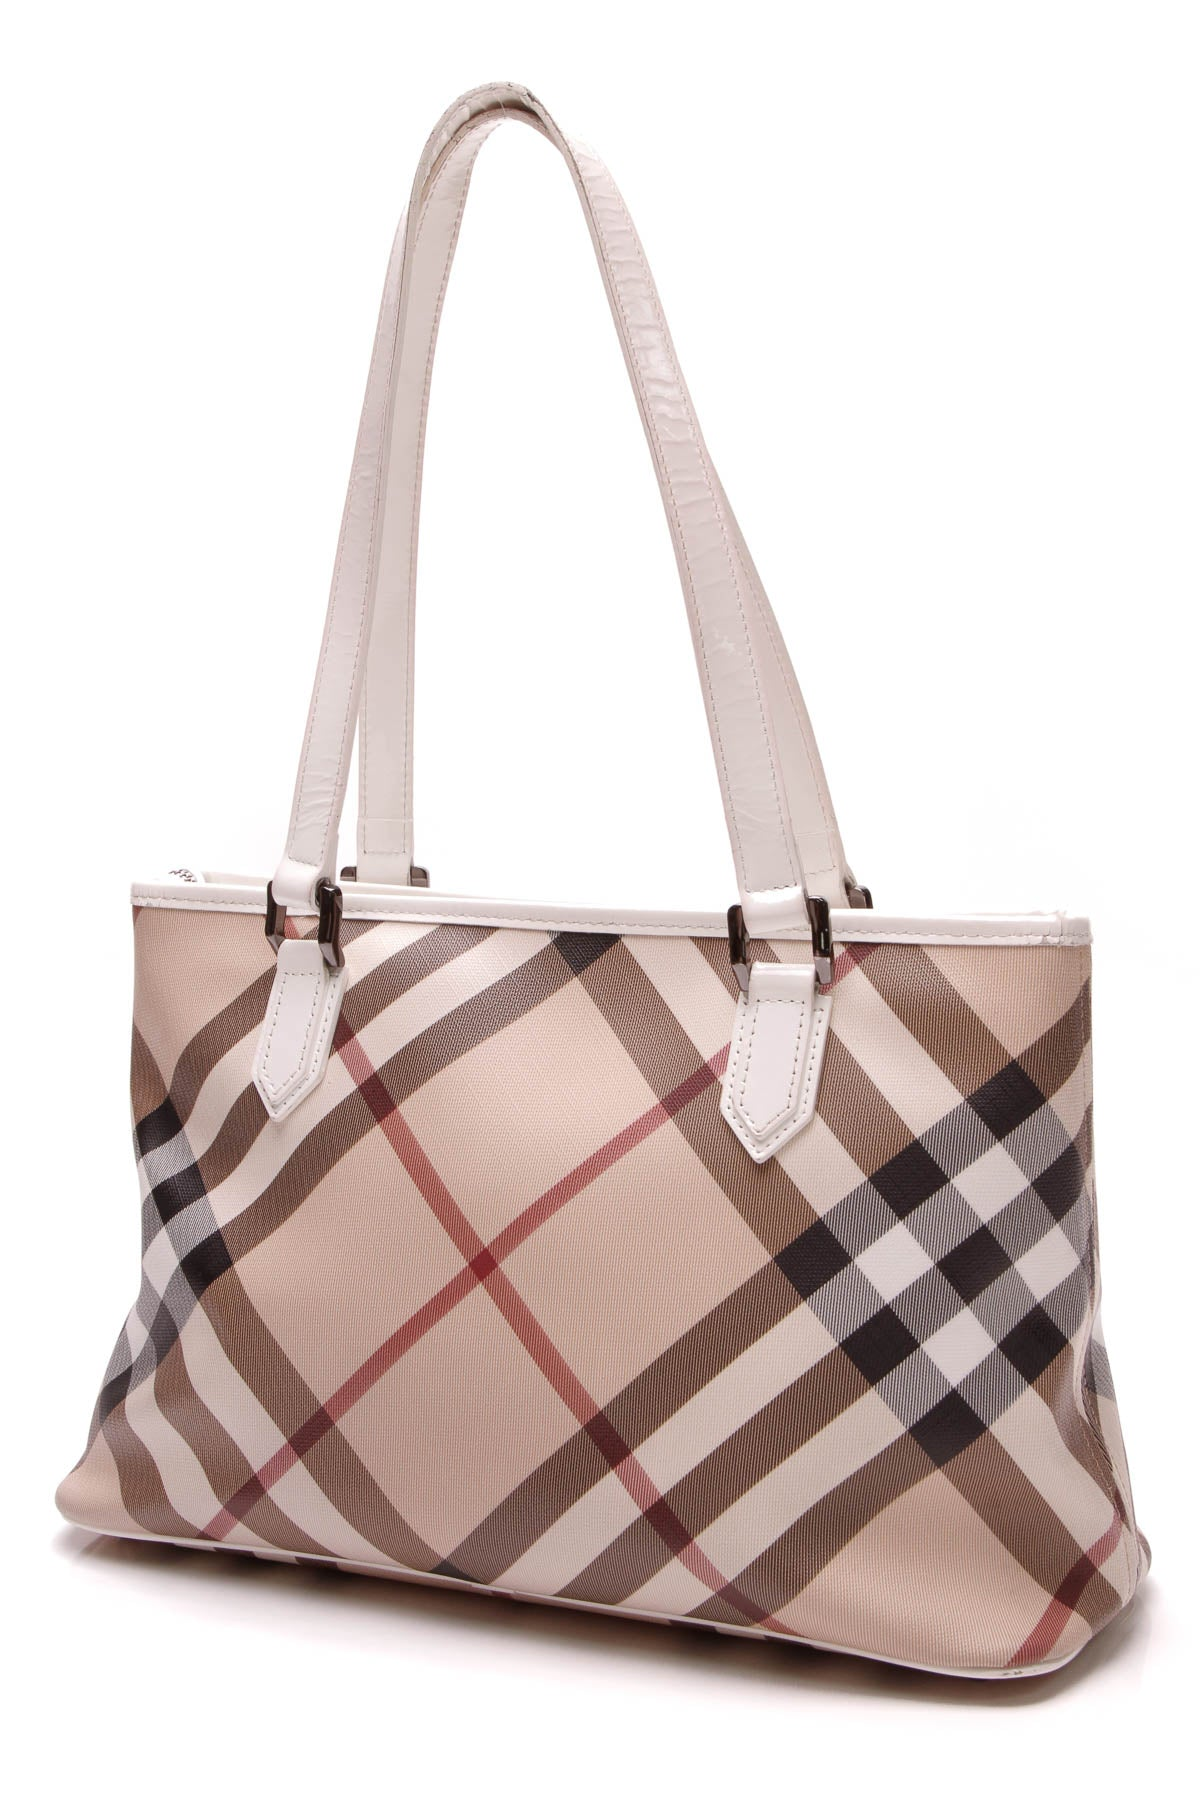 34e995f40113 Burberry Regent Tote Bag - Supernova Check – Couture USA